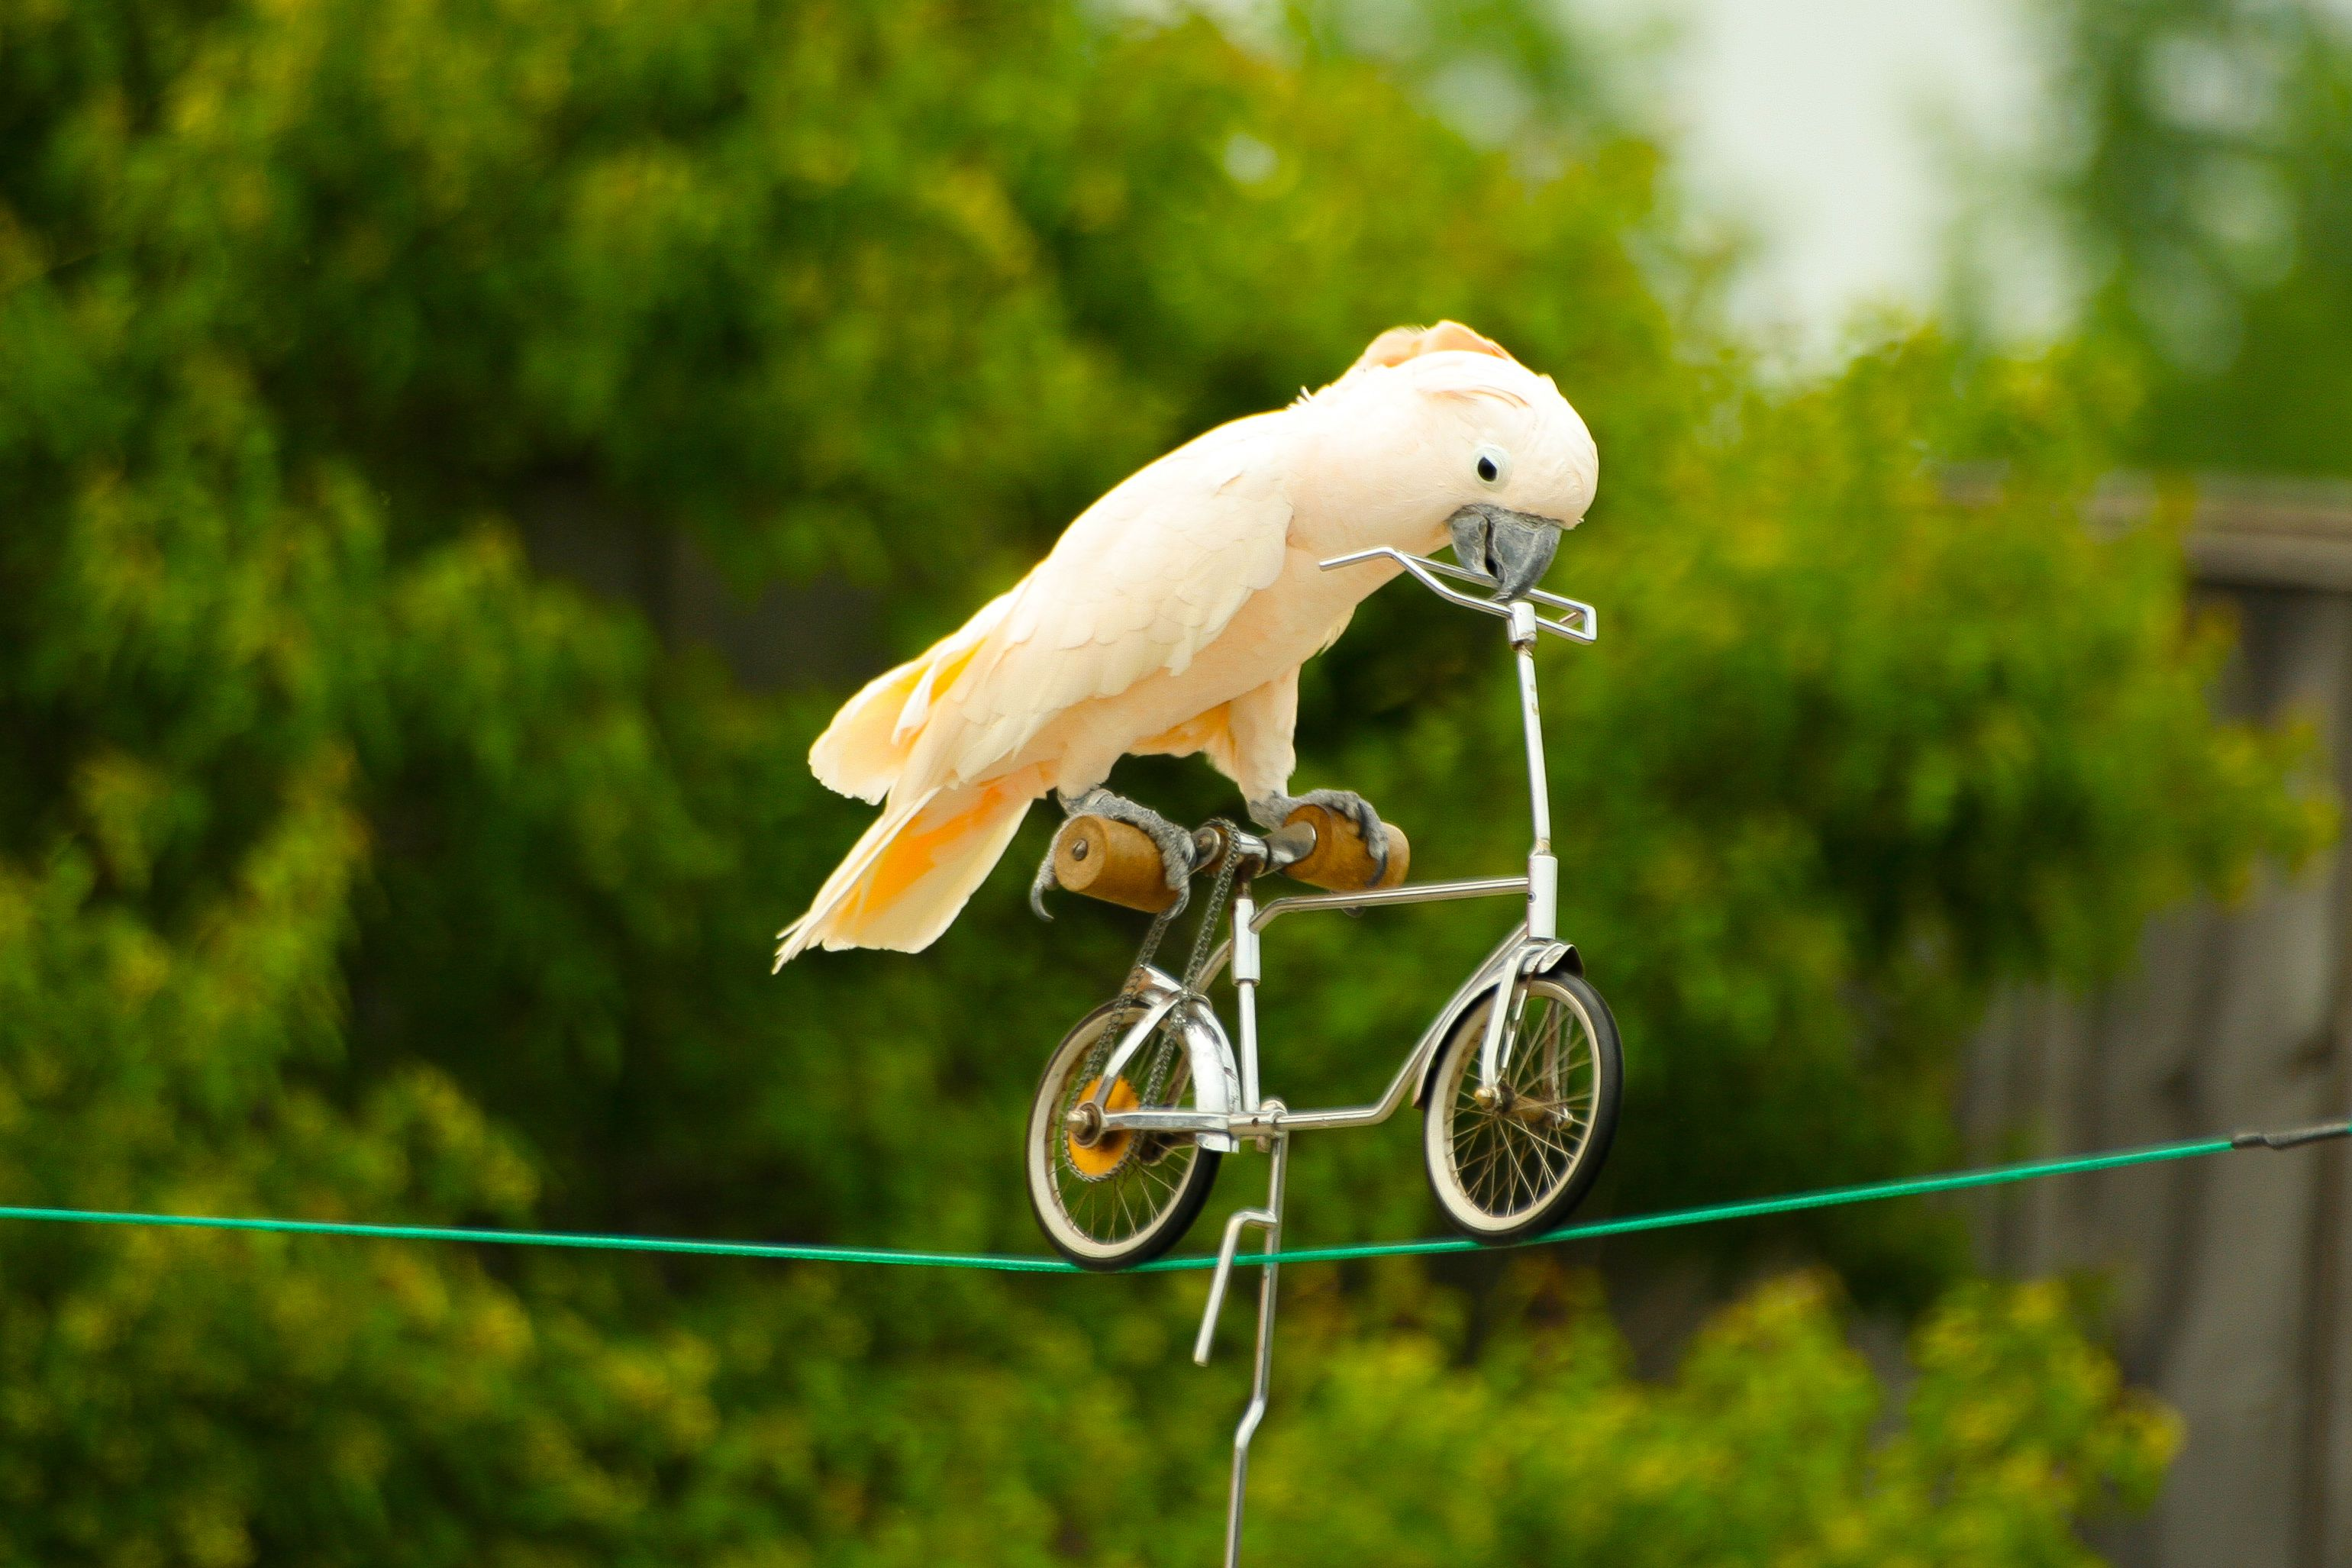 parrot on small bicycle